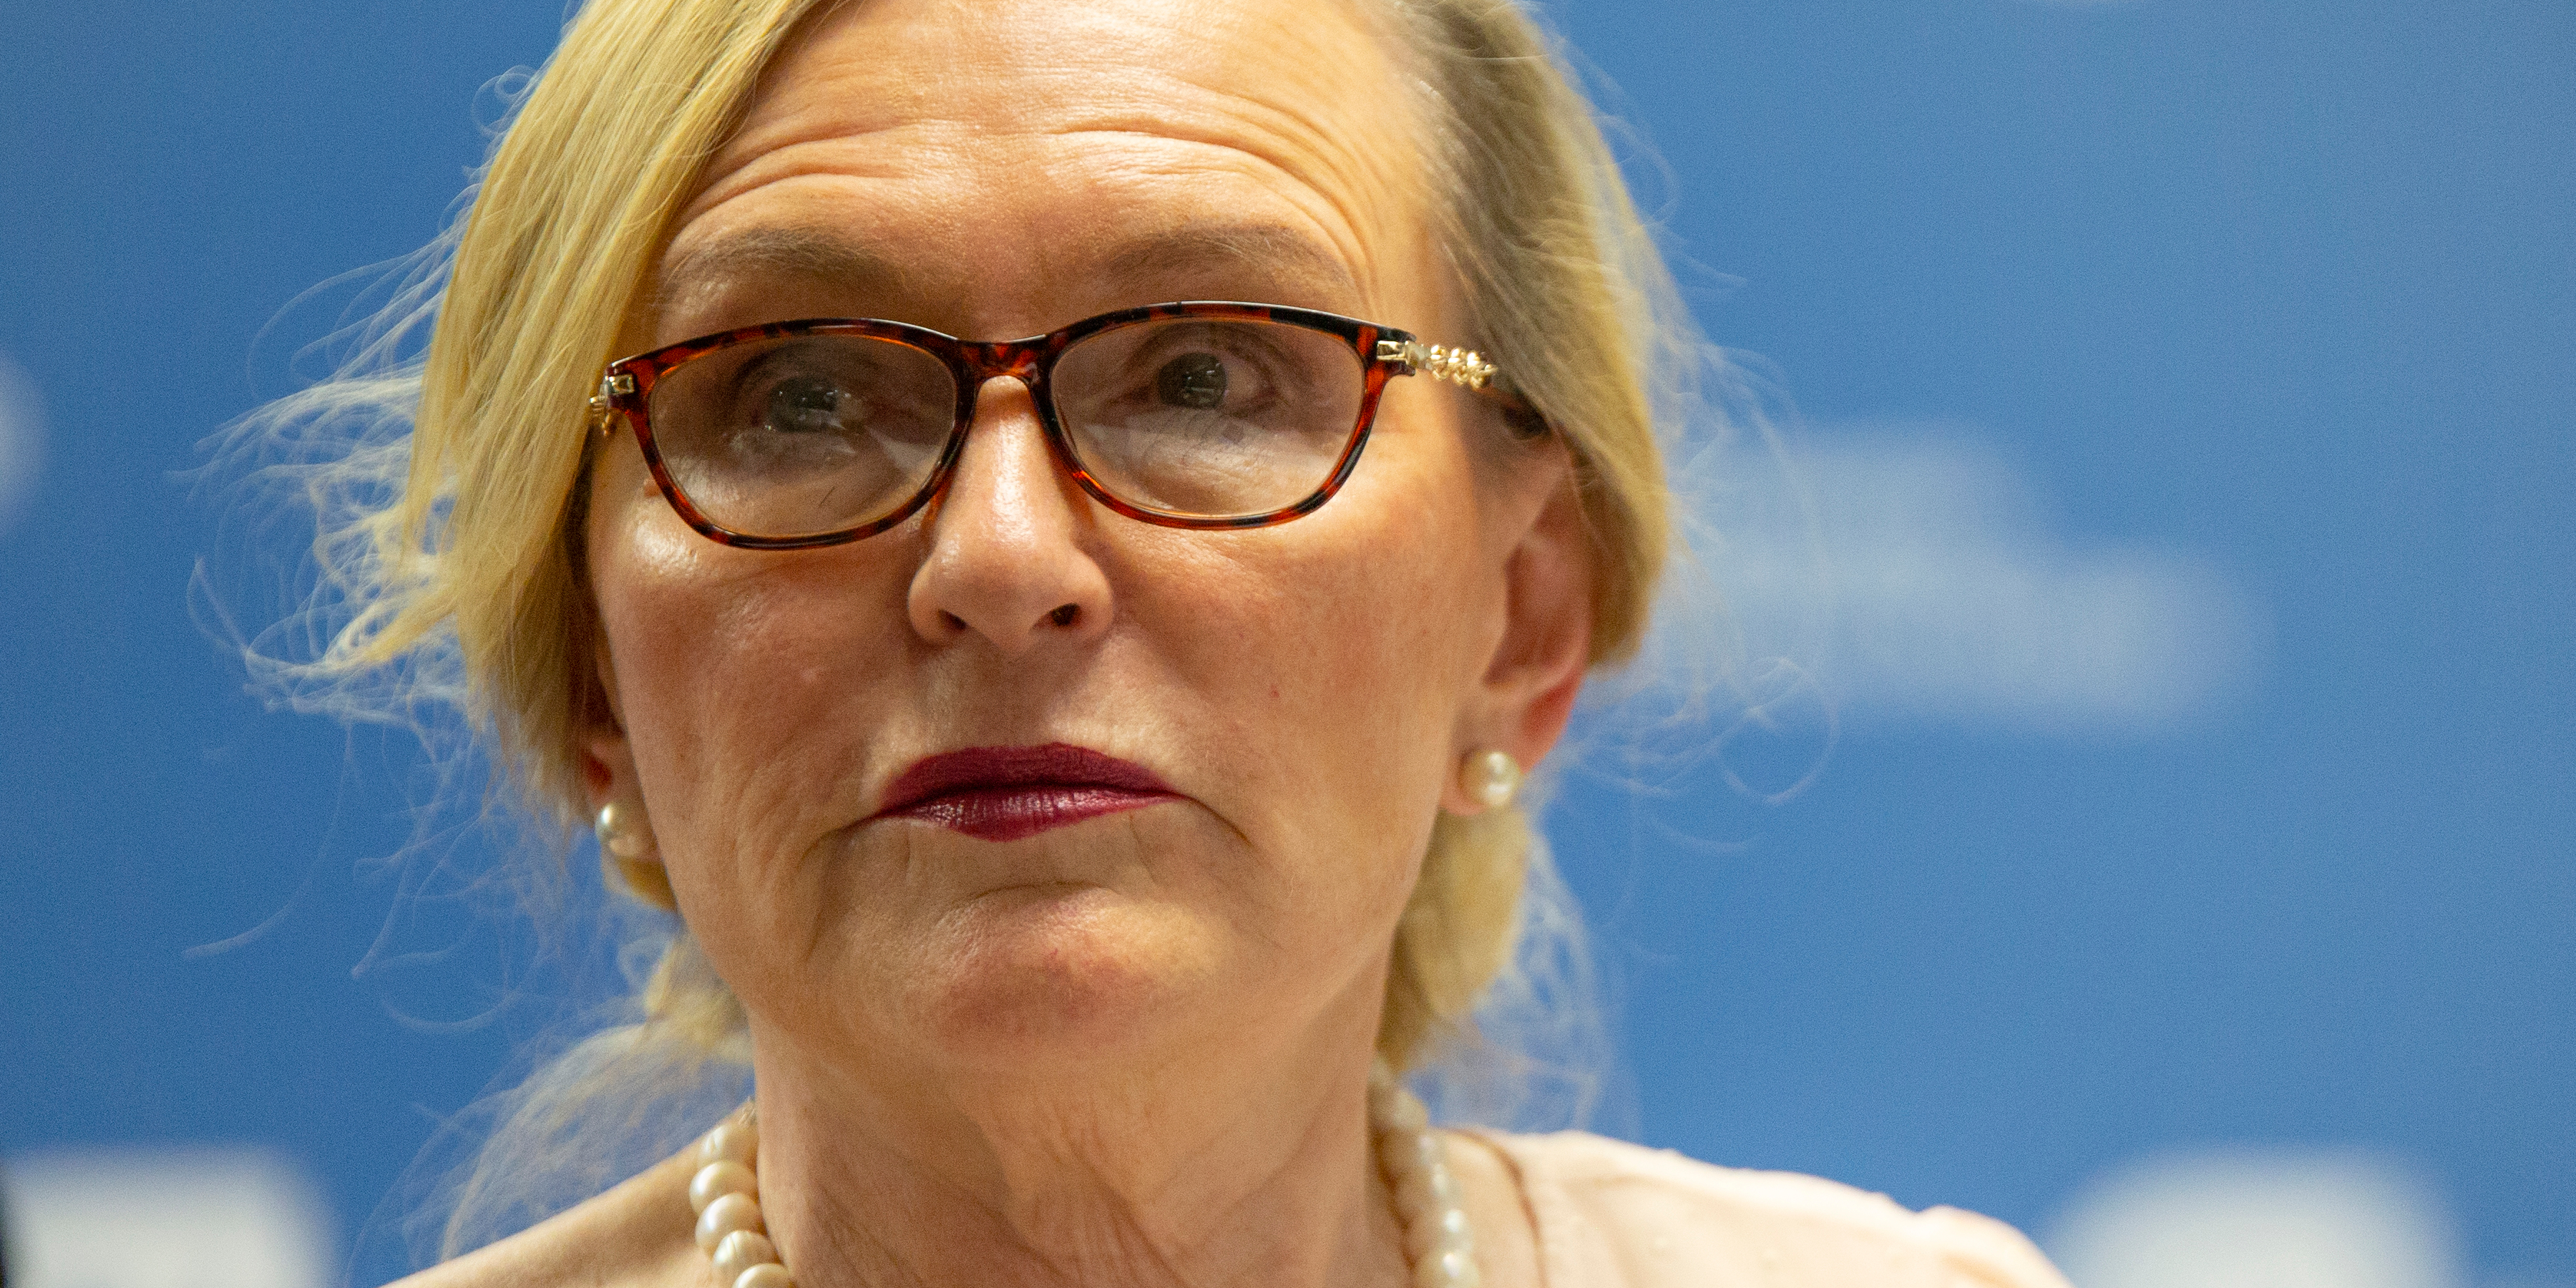 The irony of casting Helen Zille as a defender of minority interests